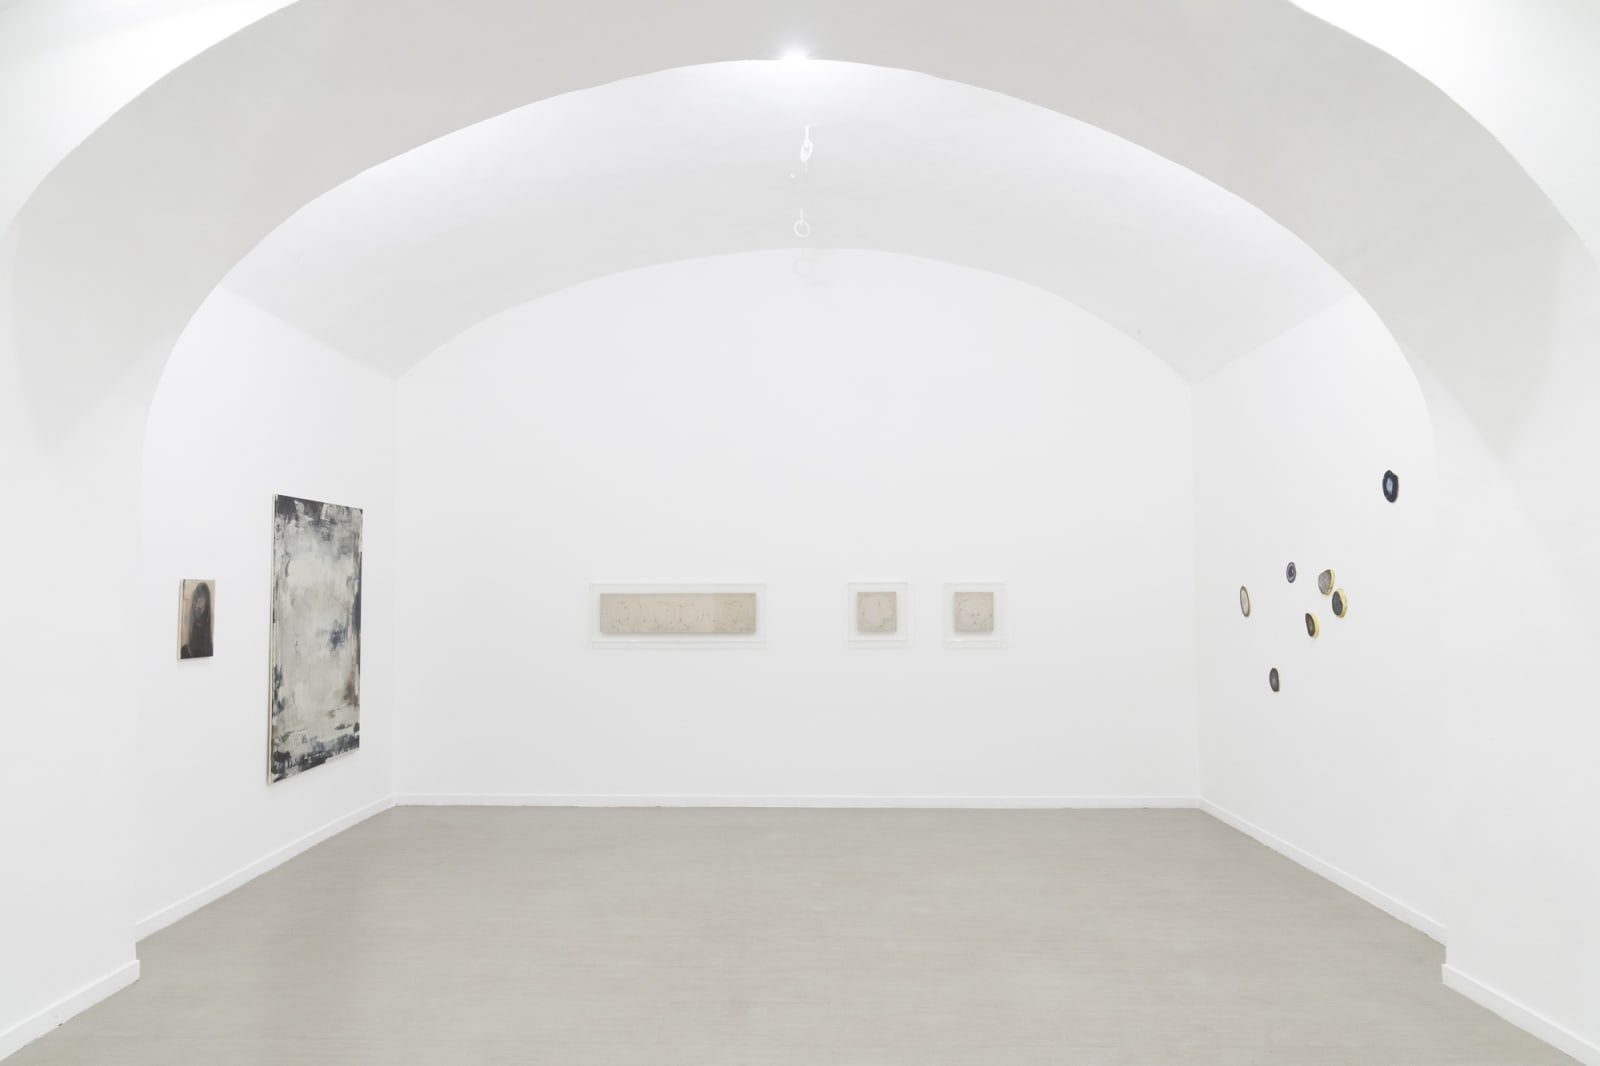 Sharing Our Dreaming Room, installation view, third hall, ph. Masiar Pasquali